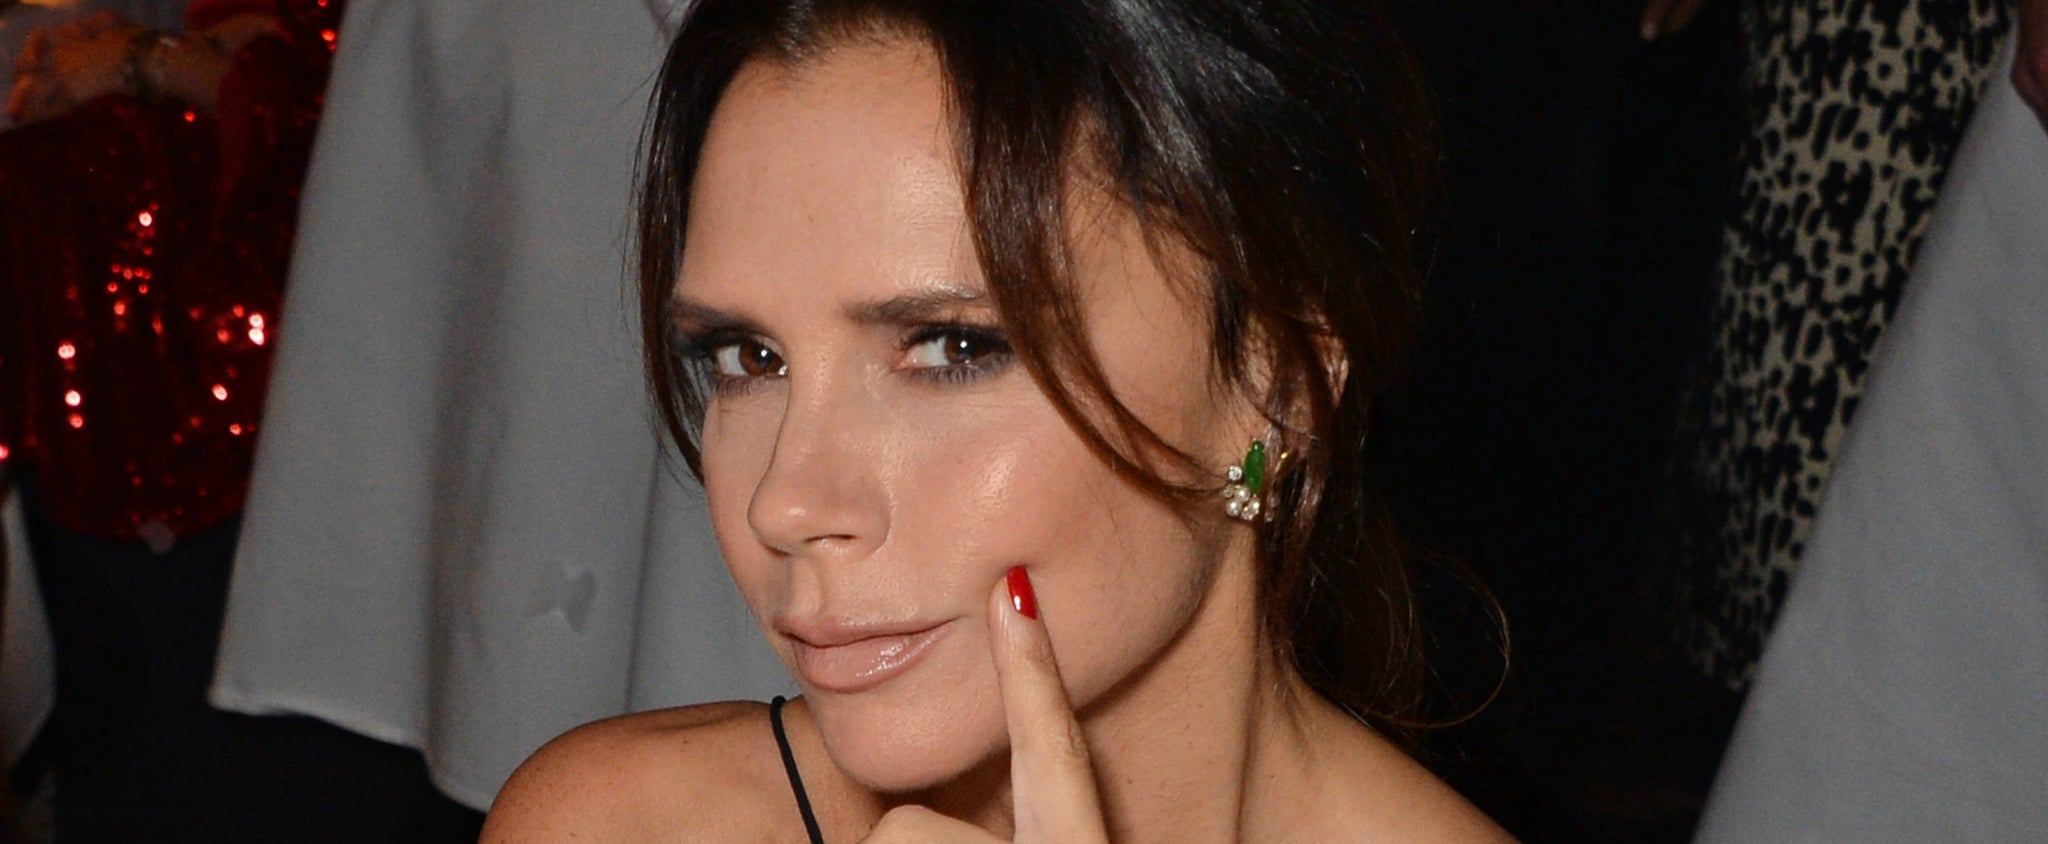 Victoria Beckham Talking About Gel Manicures YouTube Video